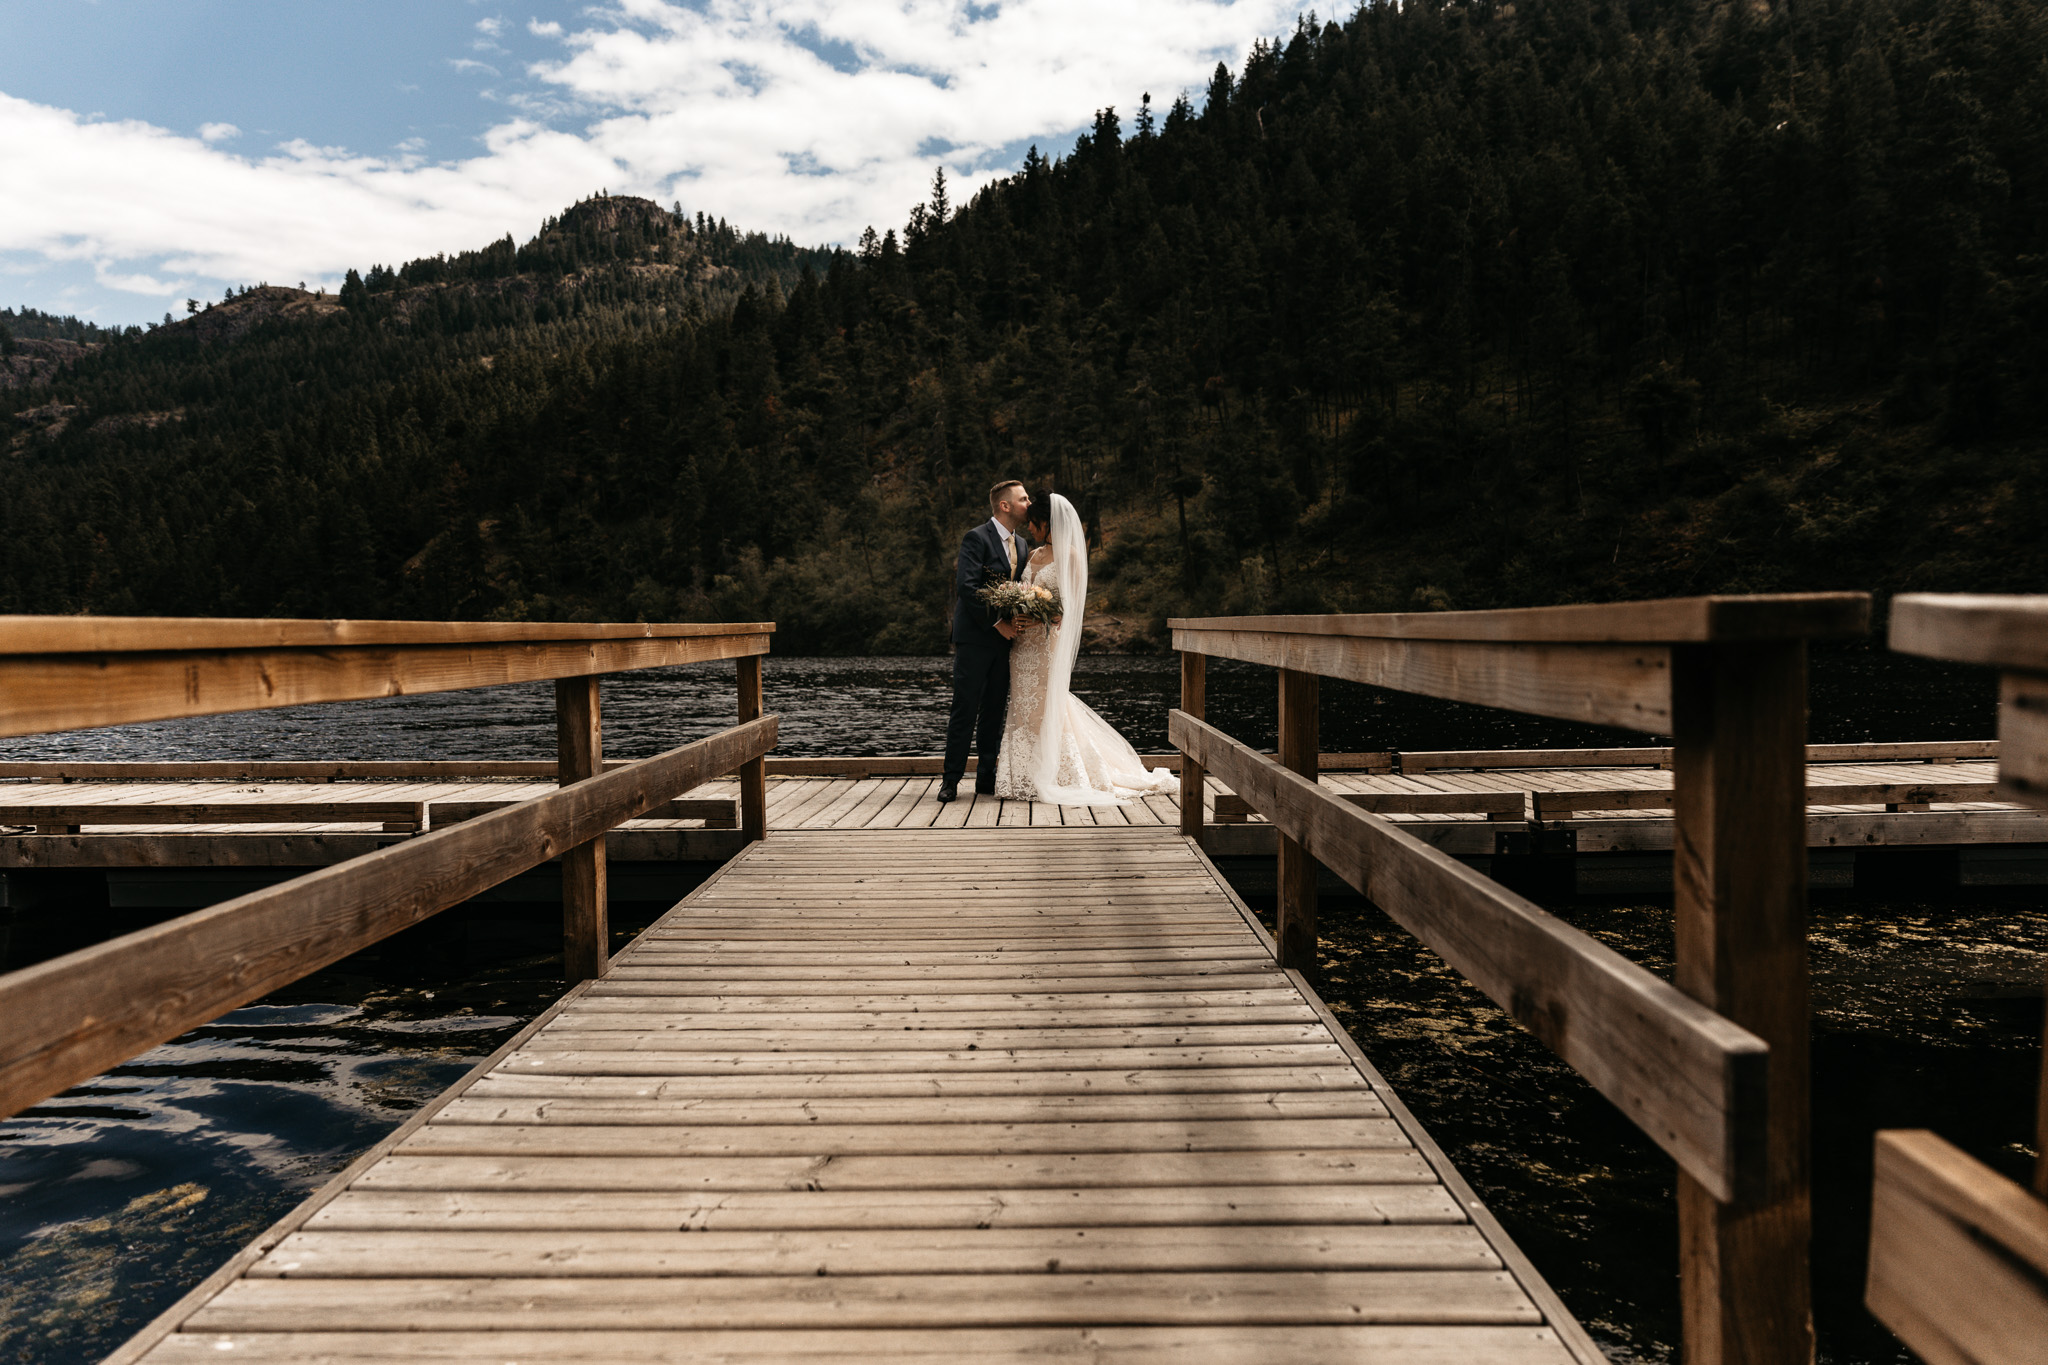 Wedding At Grist Mill in Keremeos: Curtis & Ashley